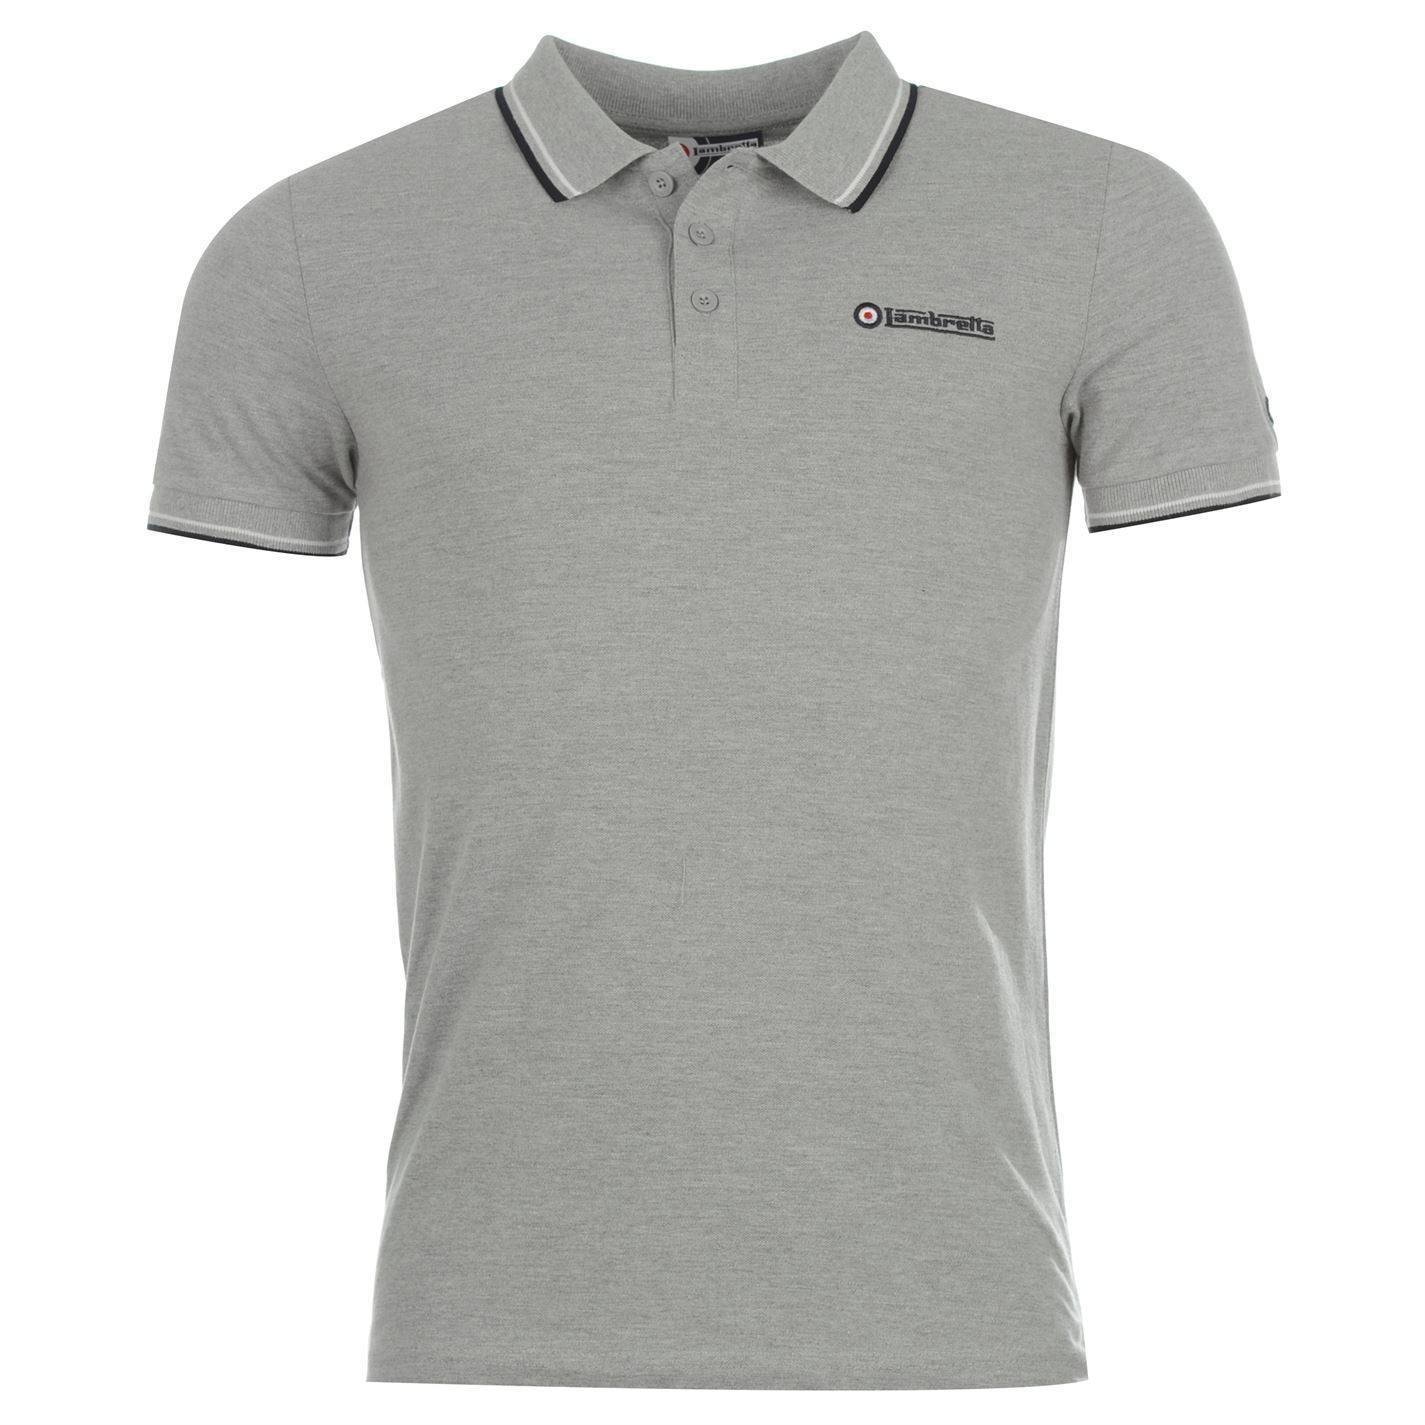 Lambretta Tip Polo Shirt for Men - Grey - Ninostyle